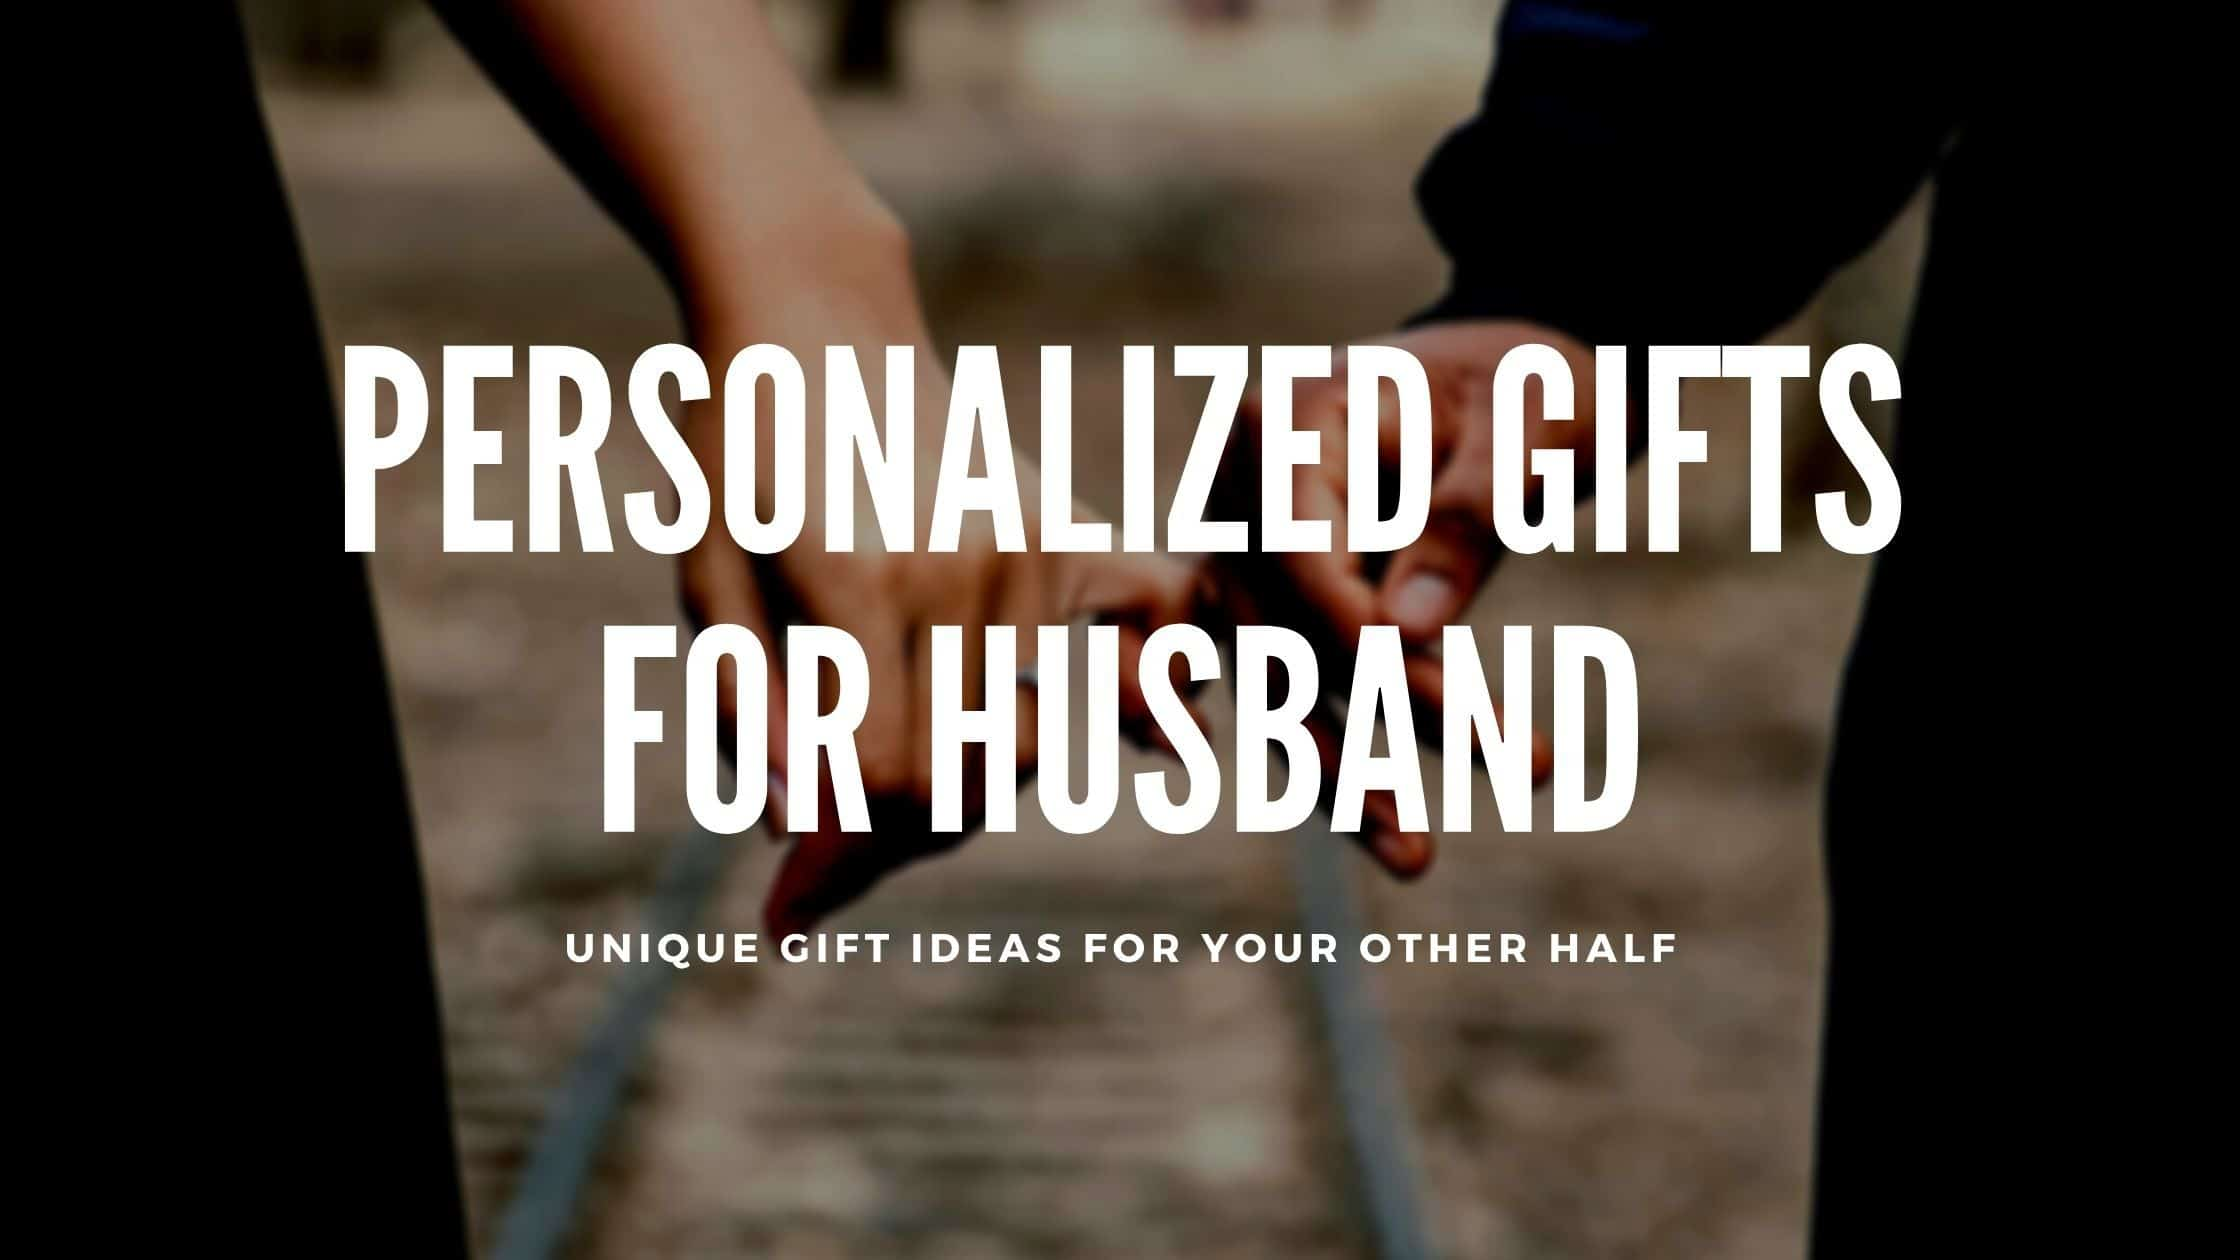 29+ Awesome Personalized Gifts for Husband That He Never Forgets (2021)